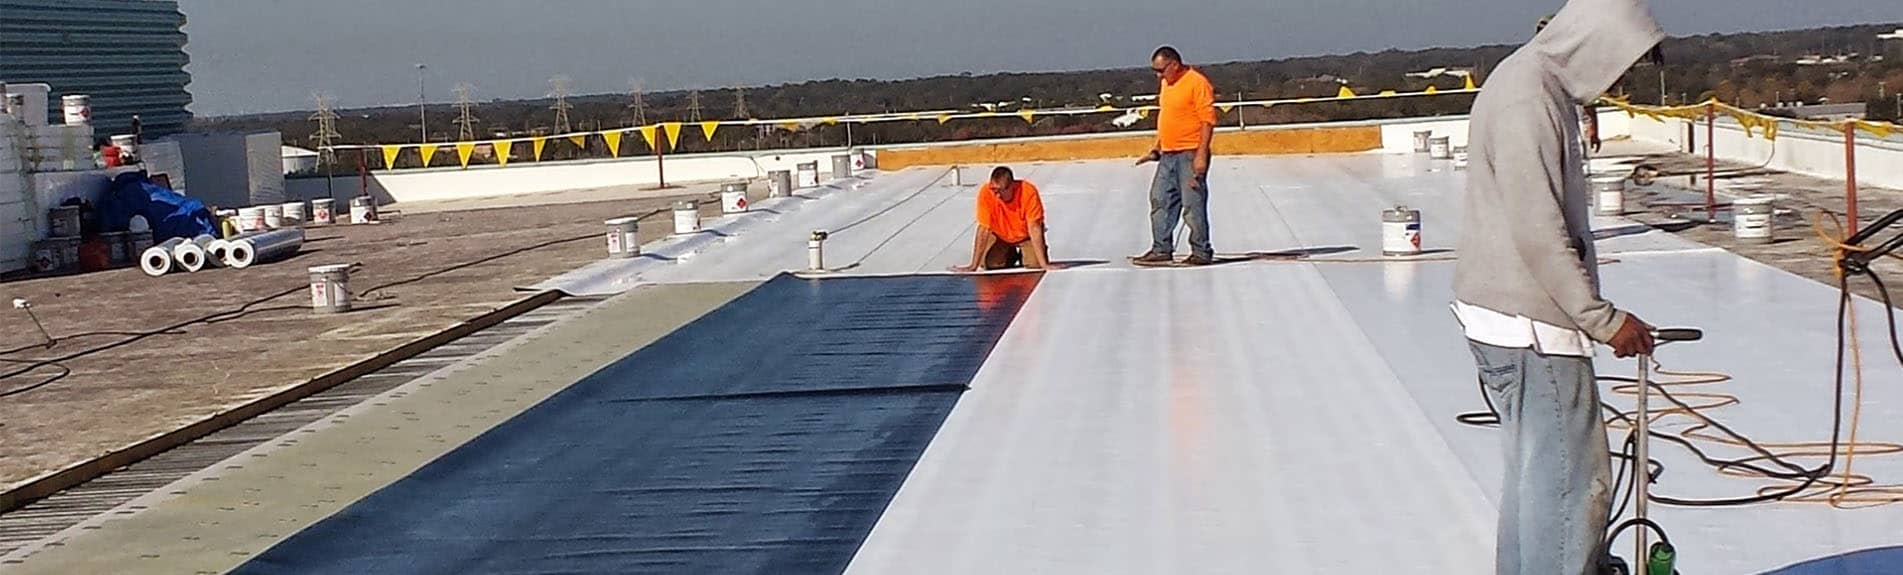 Columbia Roofing Company, Roofing Contractor and Roofer